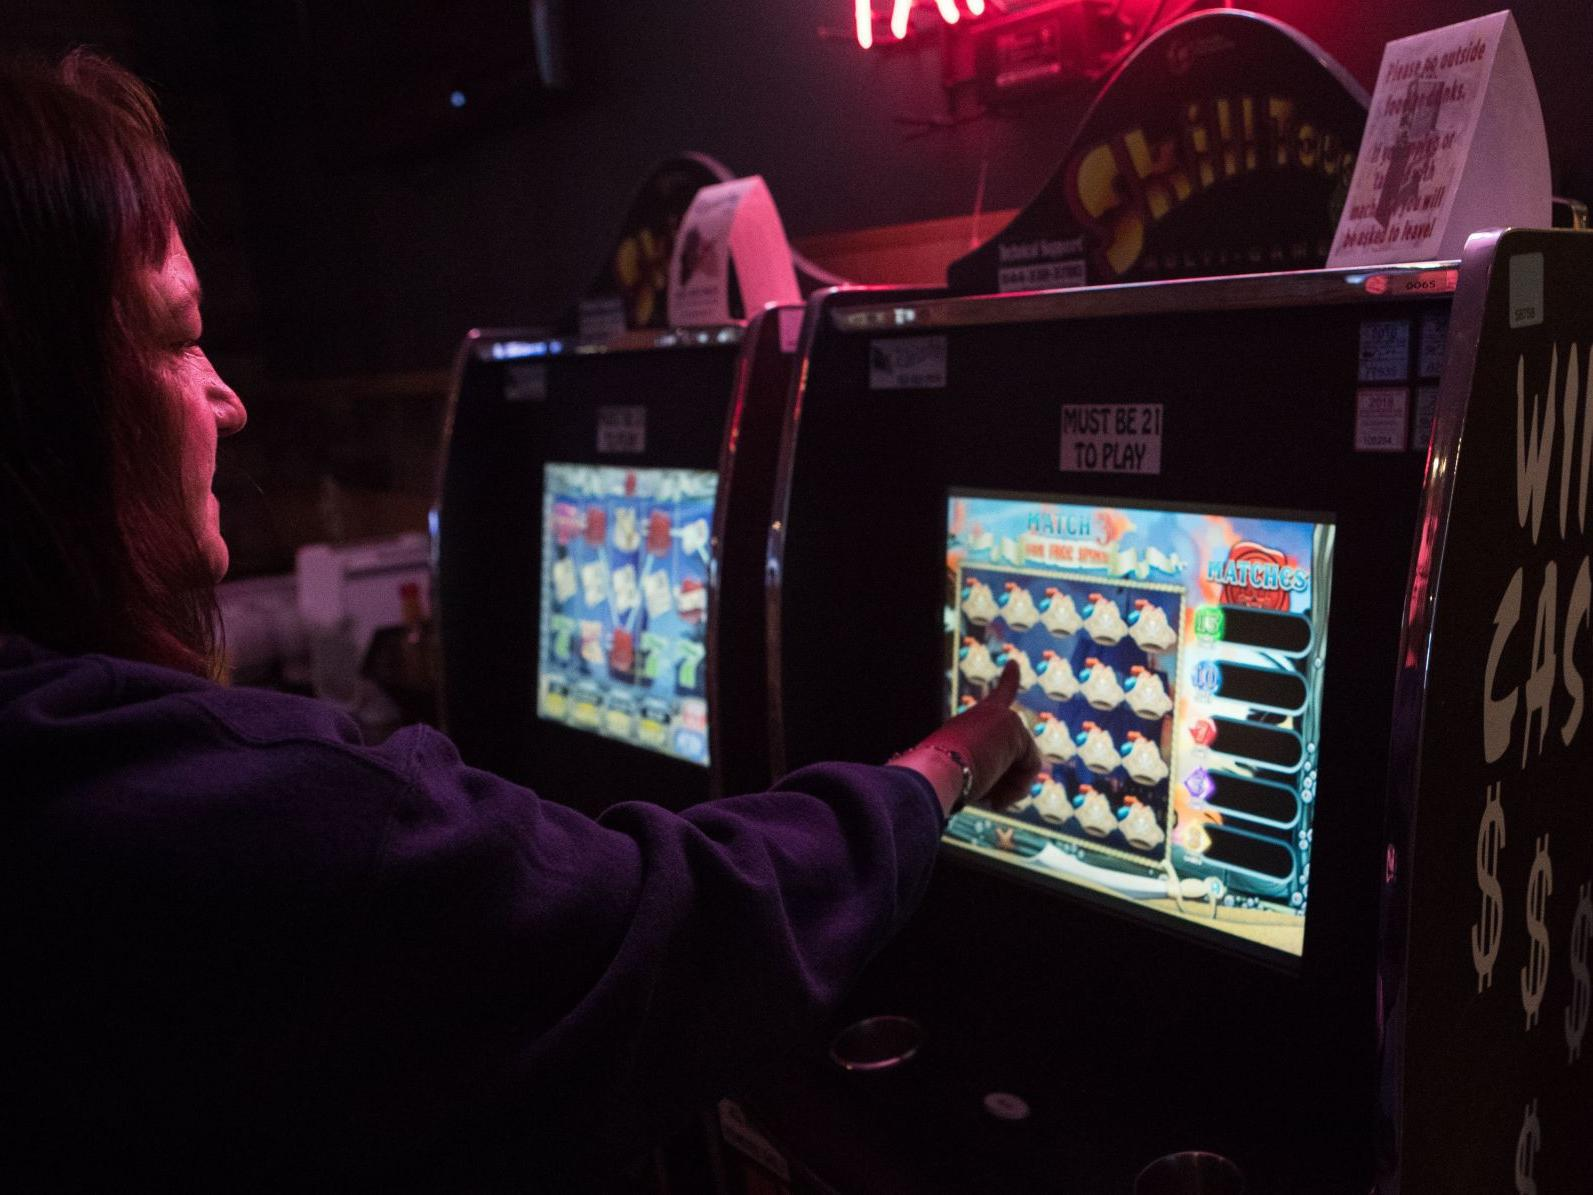 'Skill' video games thrive in Nebraska, but their legality is in doubt